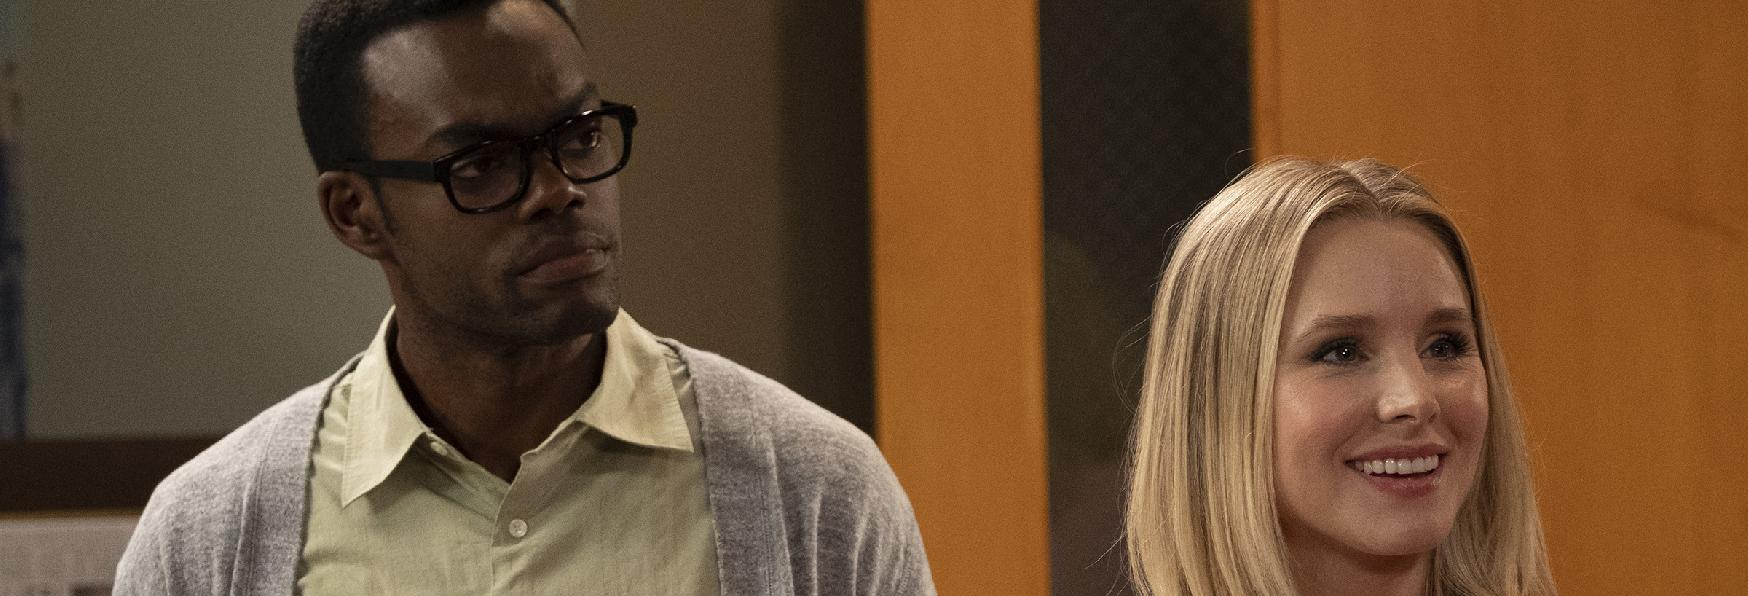 The Good Place: la Quarta Stagione sarà l'Ultima. Cancellata la Serie TV di NBC